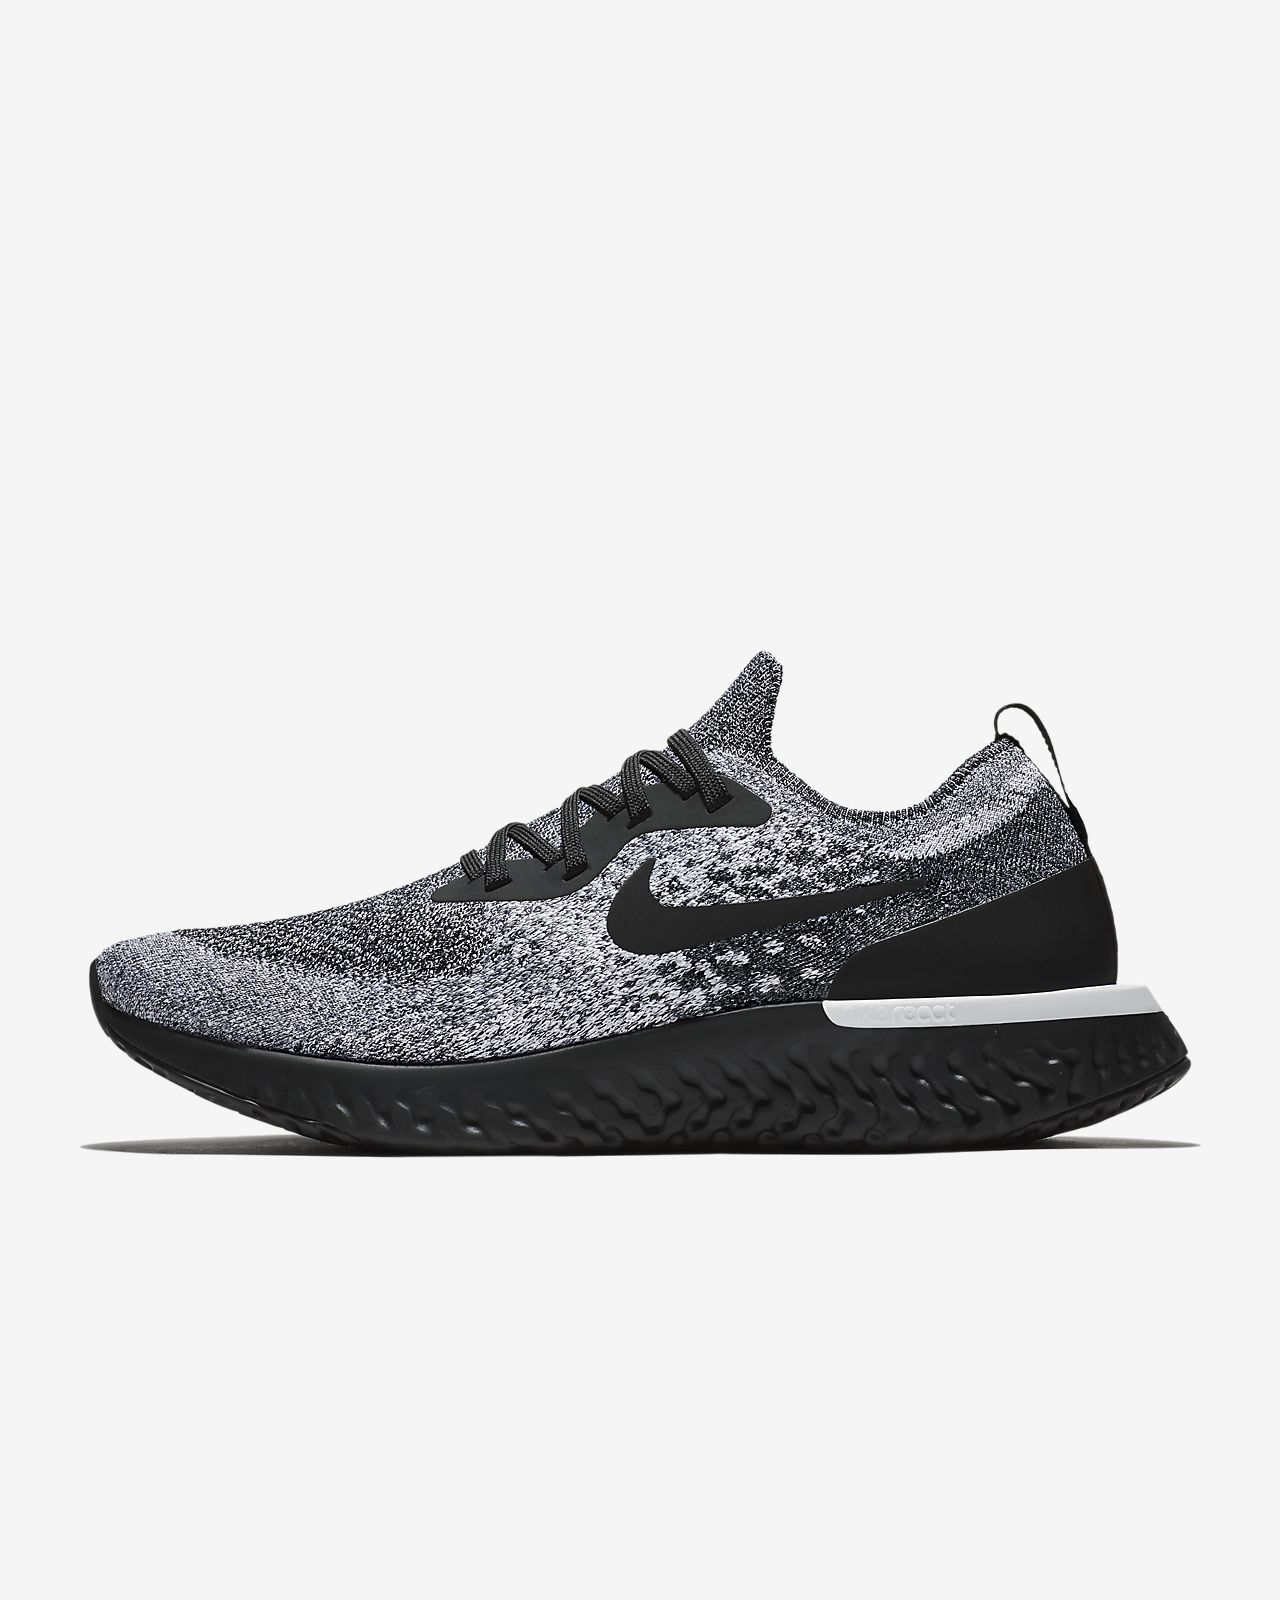 online store 4ac1a 0e285 ... Nike Epic React Flyknit Men s Running Shoe